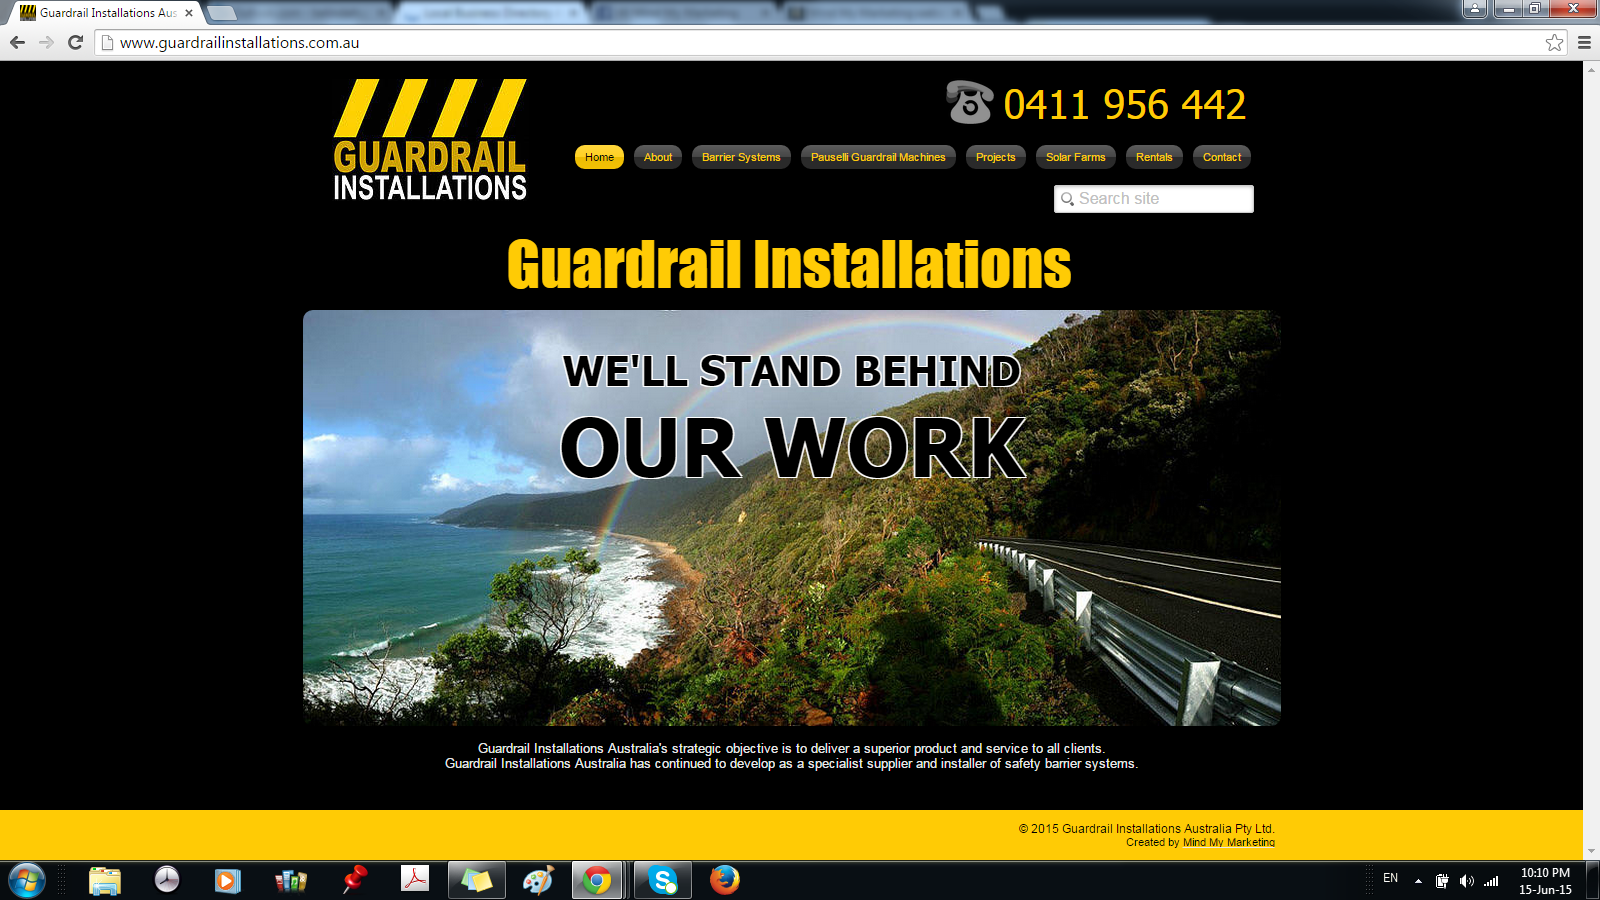 Guardrail Installations Australia